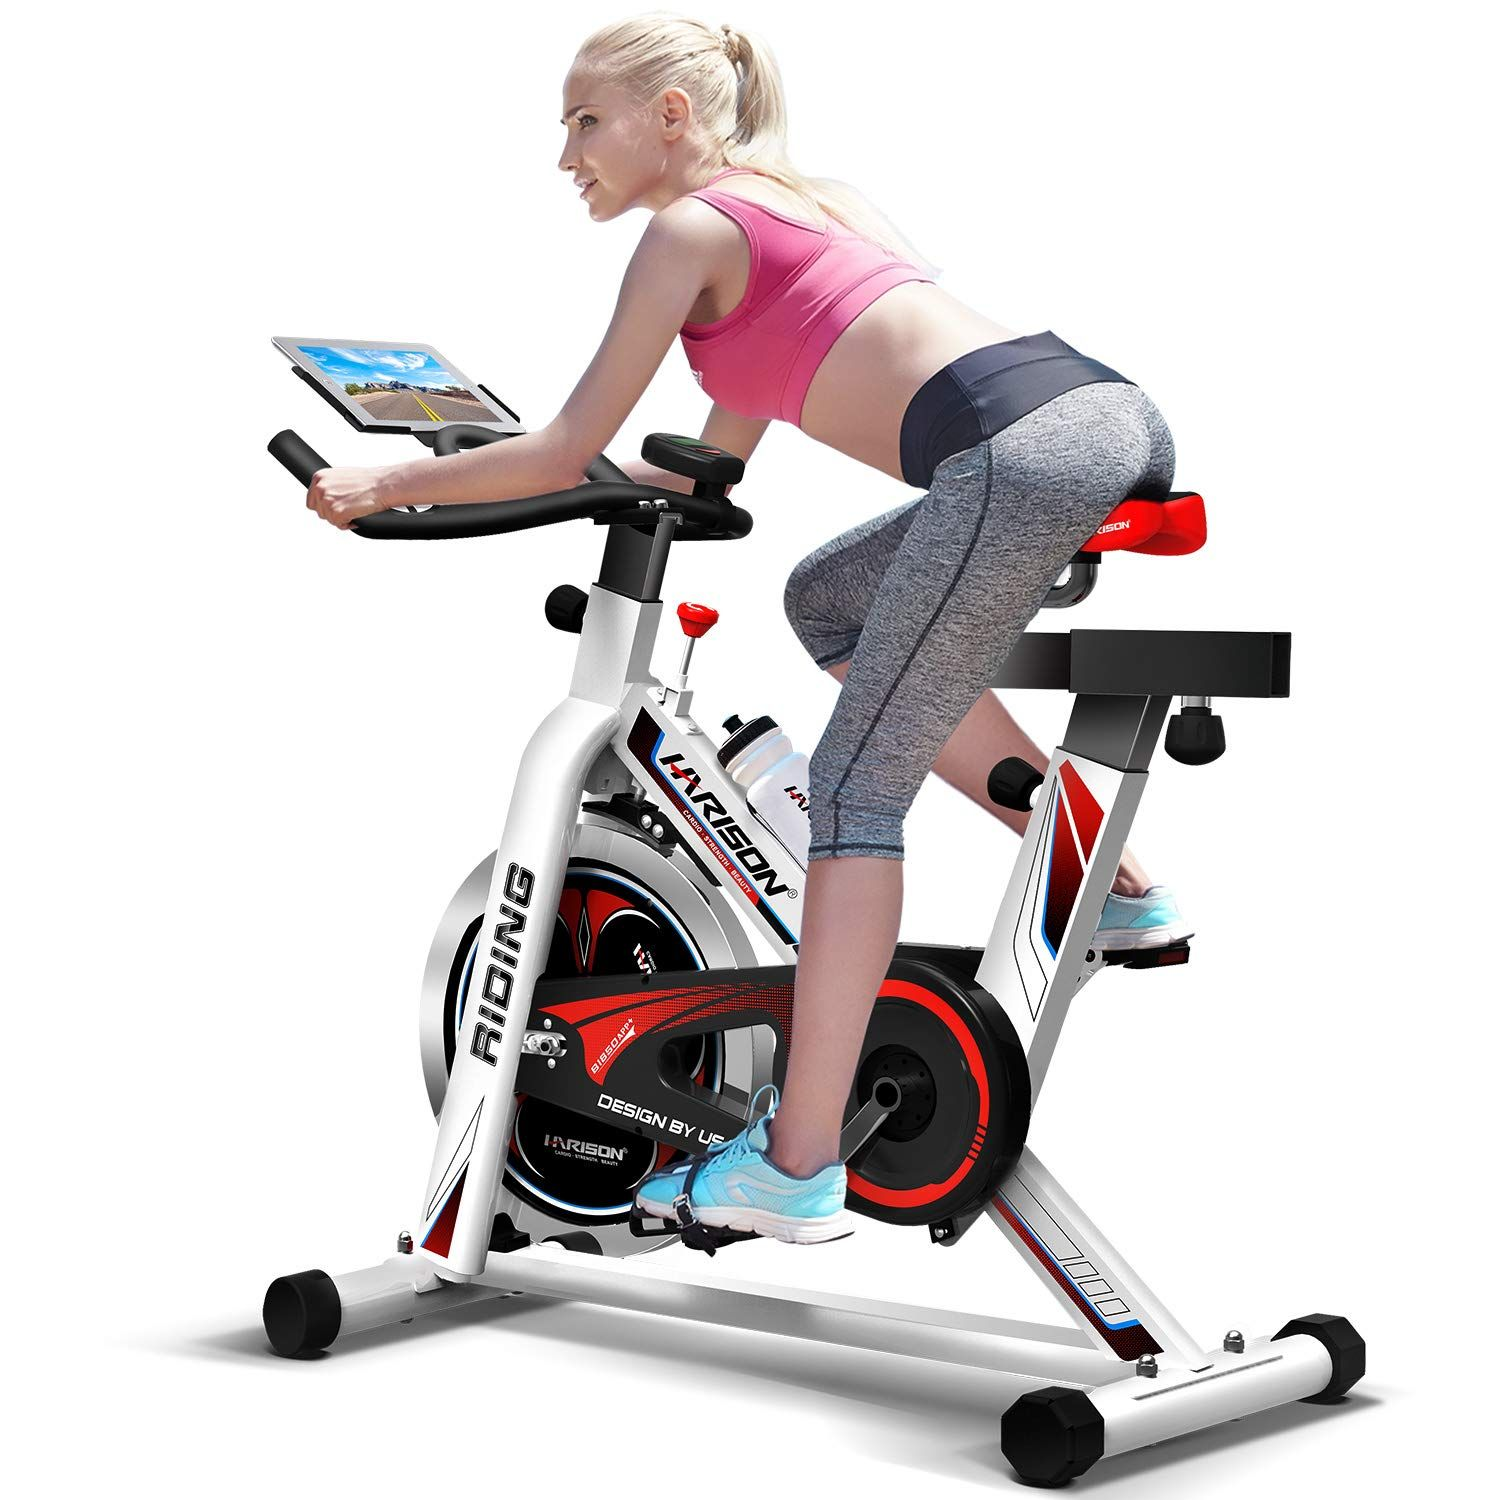 Indoor Cycling Bike Belt Drive Stationary Exercise Spin Bike For Home Use Spin Bike Workouts Indoor Cycling Bike Biking Workout